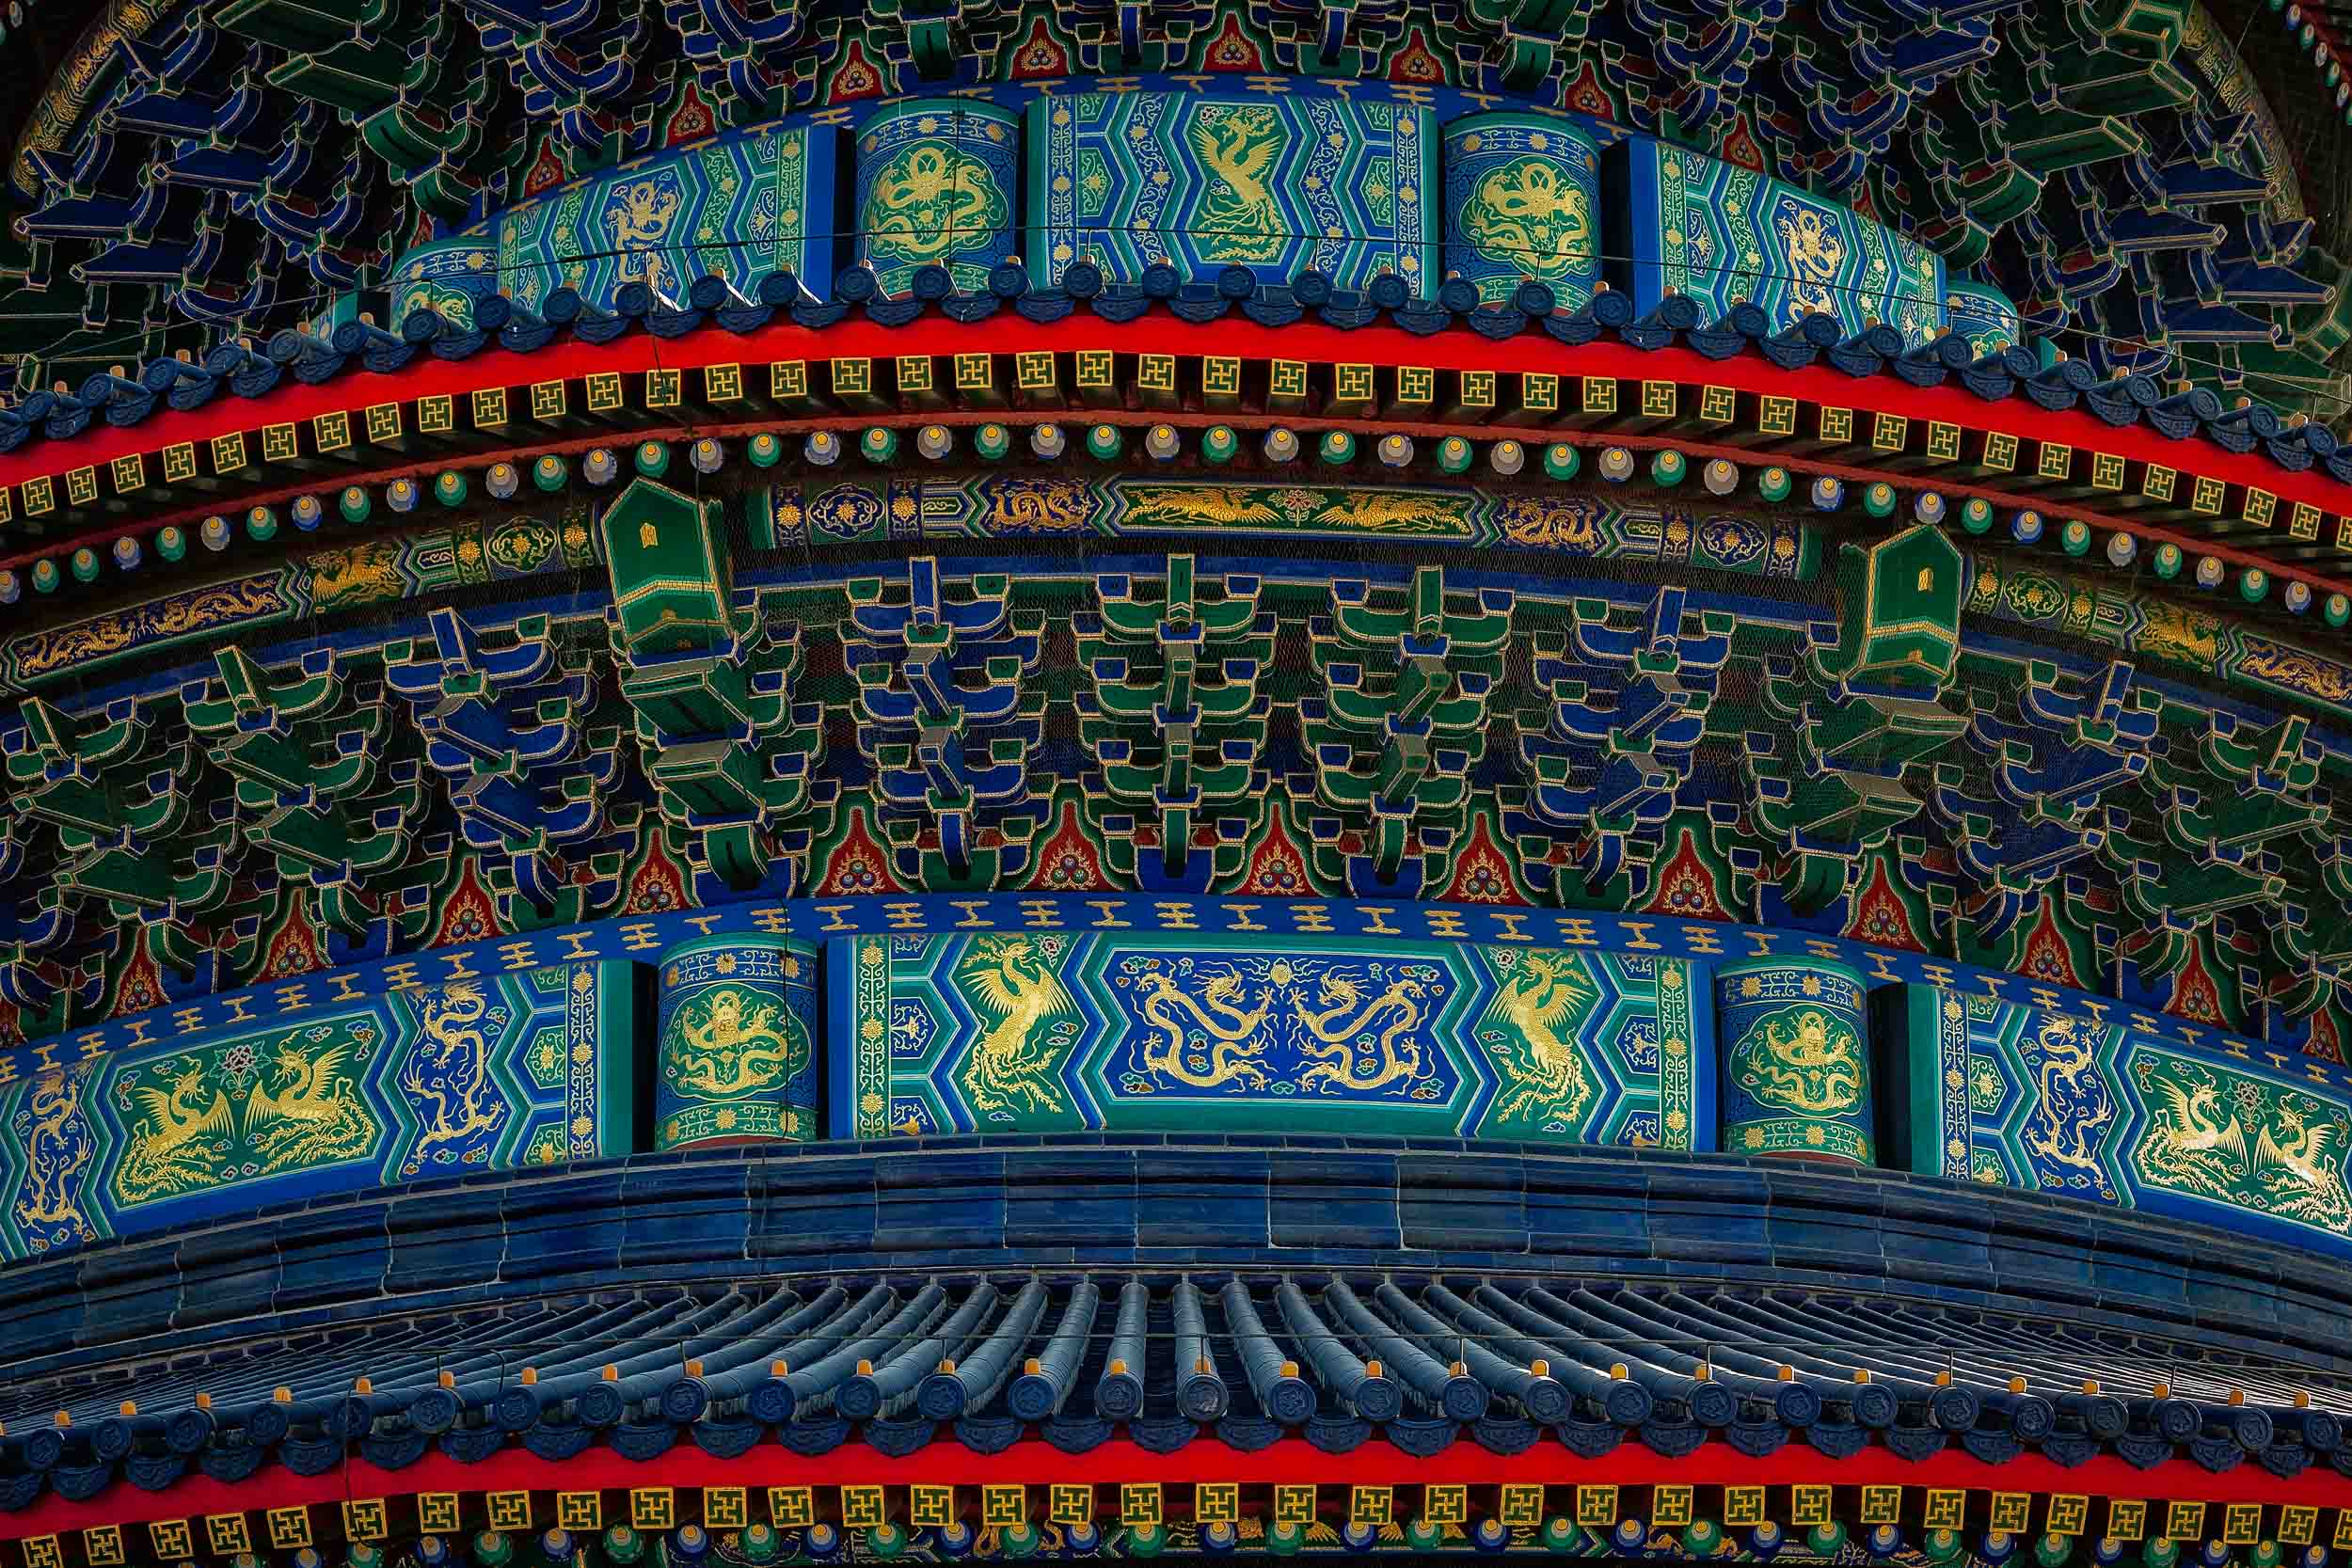 A close up exploration of an amazing building at the    Temple Of Heaven    complex in    Beijing, China   . As you can see it was the richly decorative    colors, shapes and textures    that drew my attention.